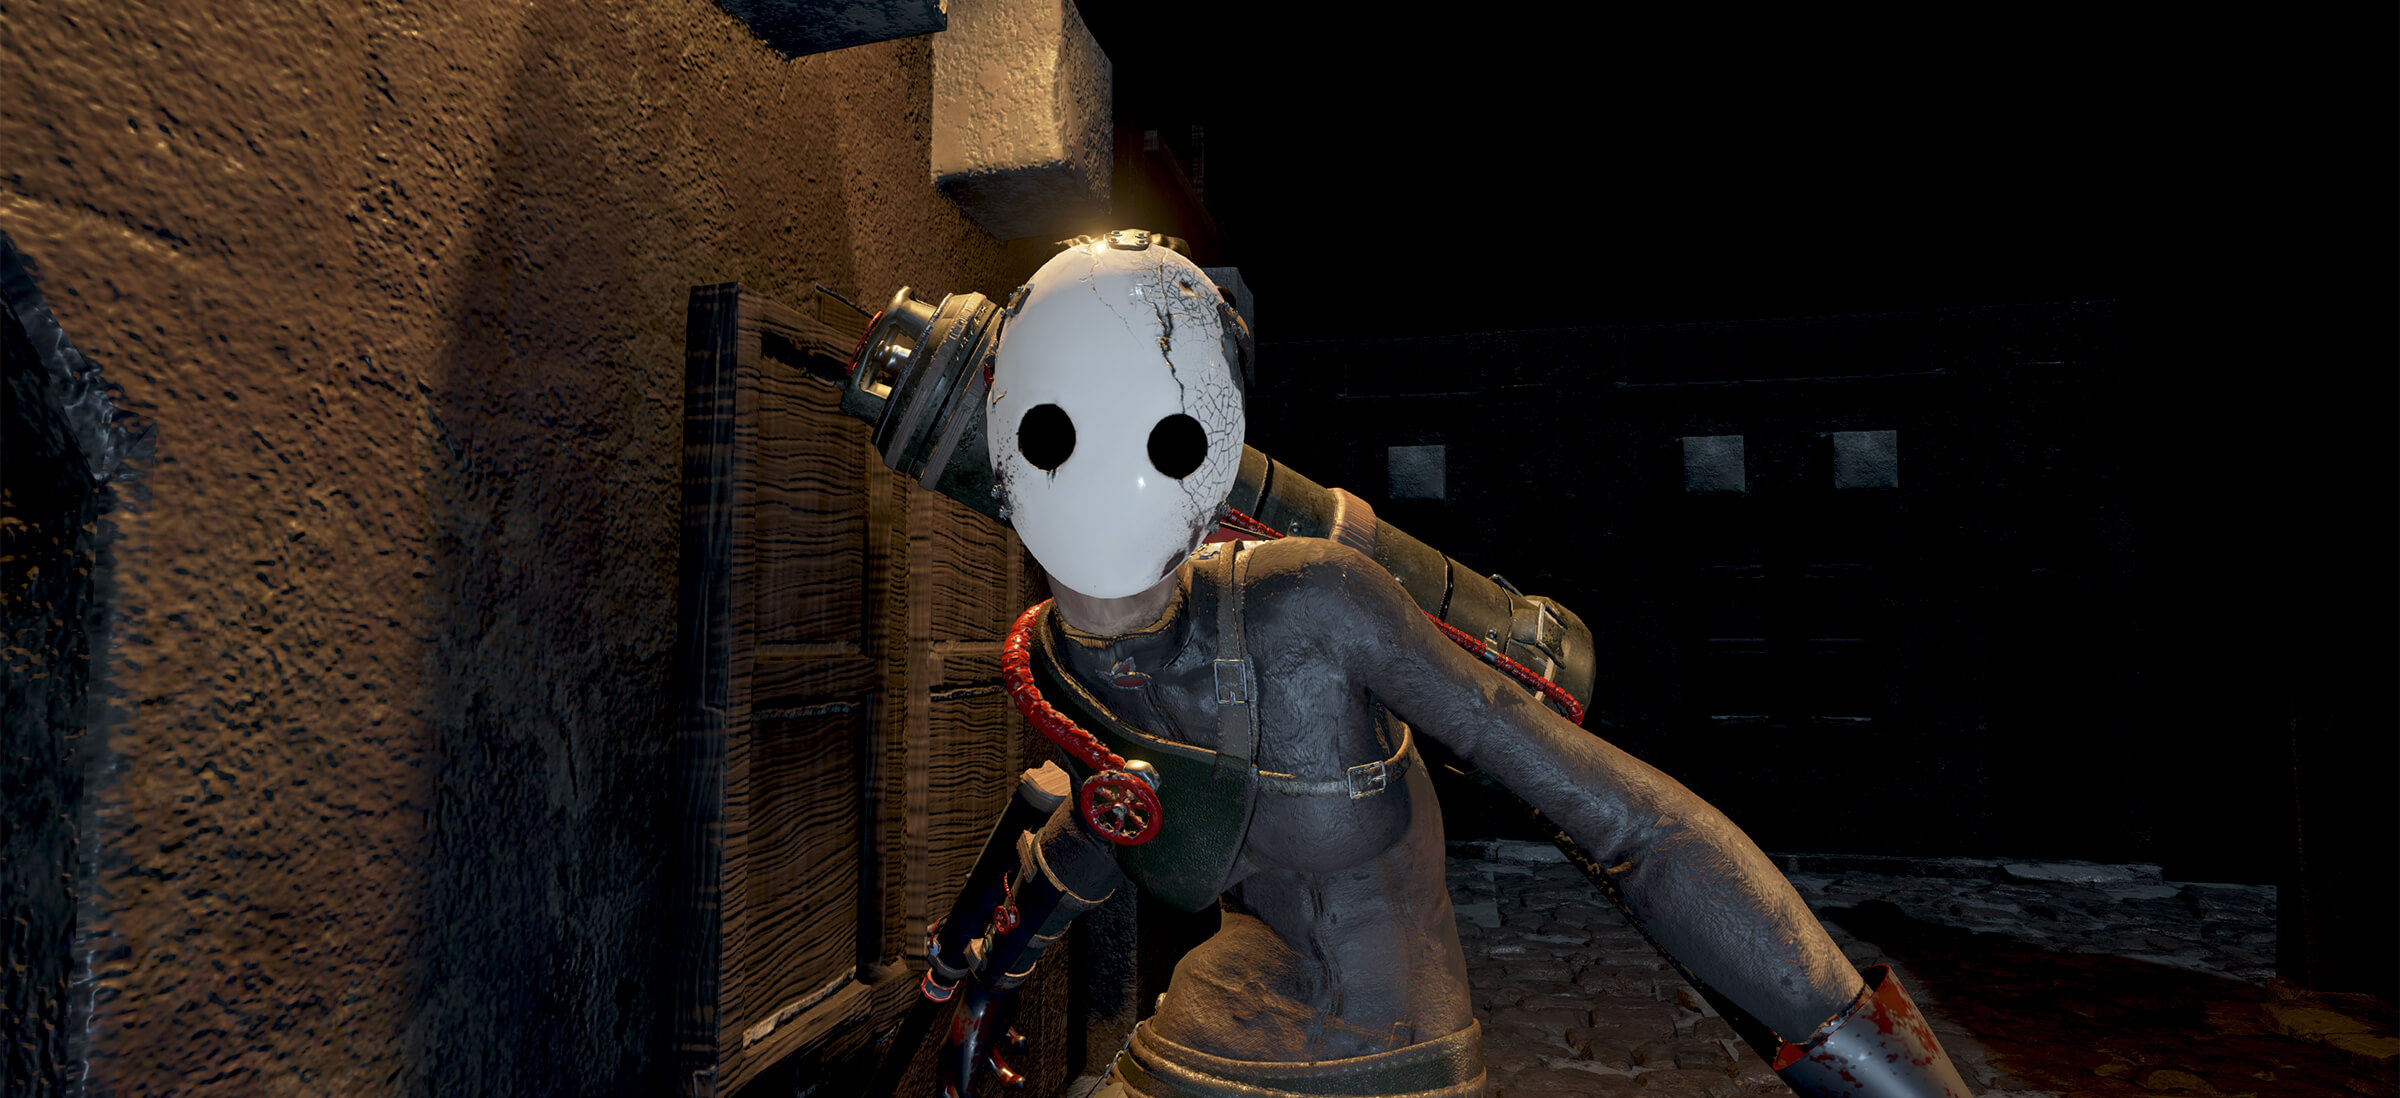 computer-generated 3D environment featuring a character with a shiny, egg-like mask in a dark alley